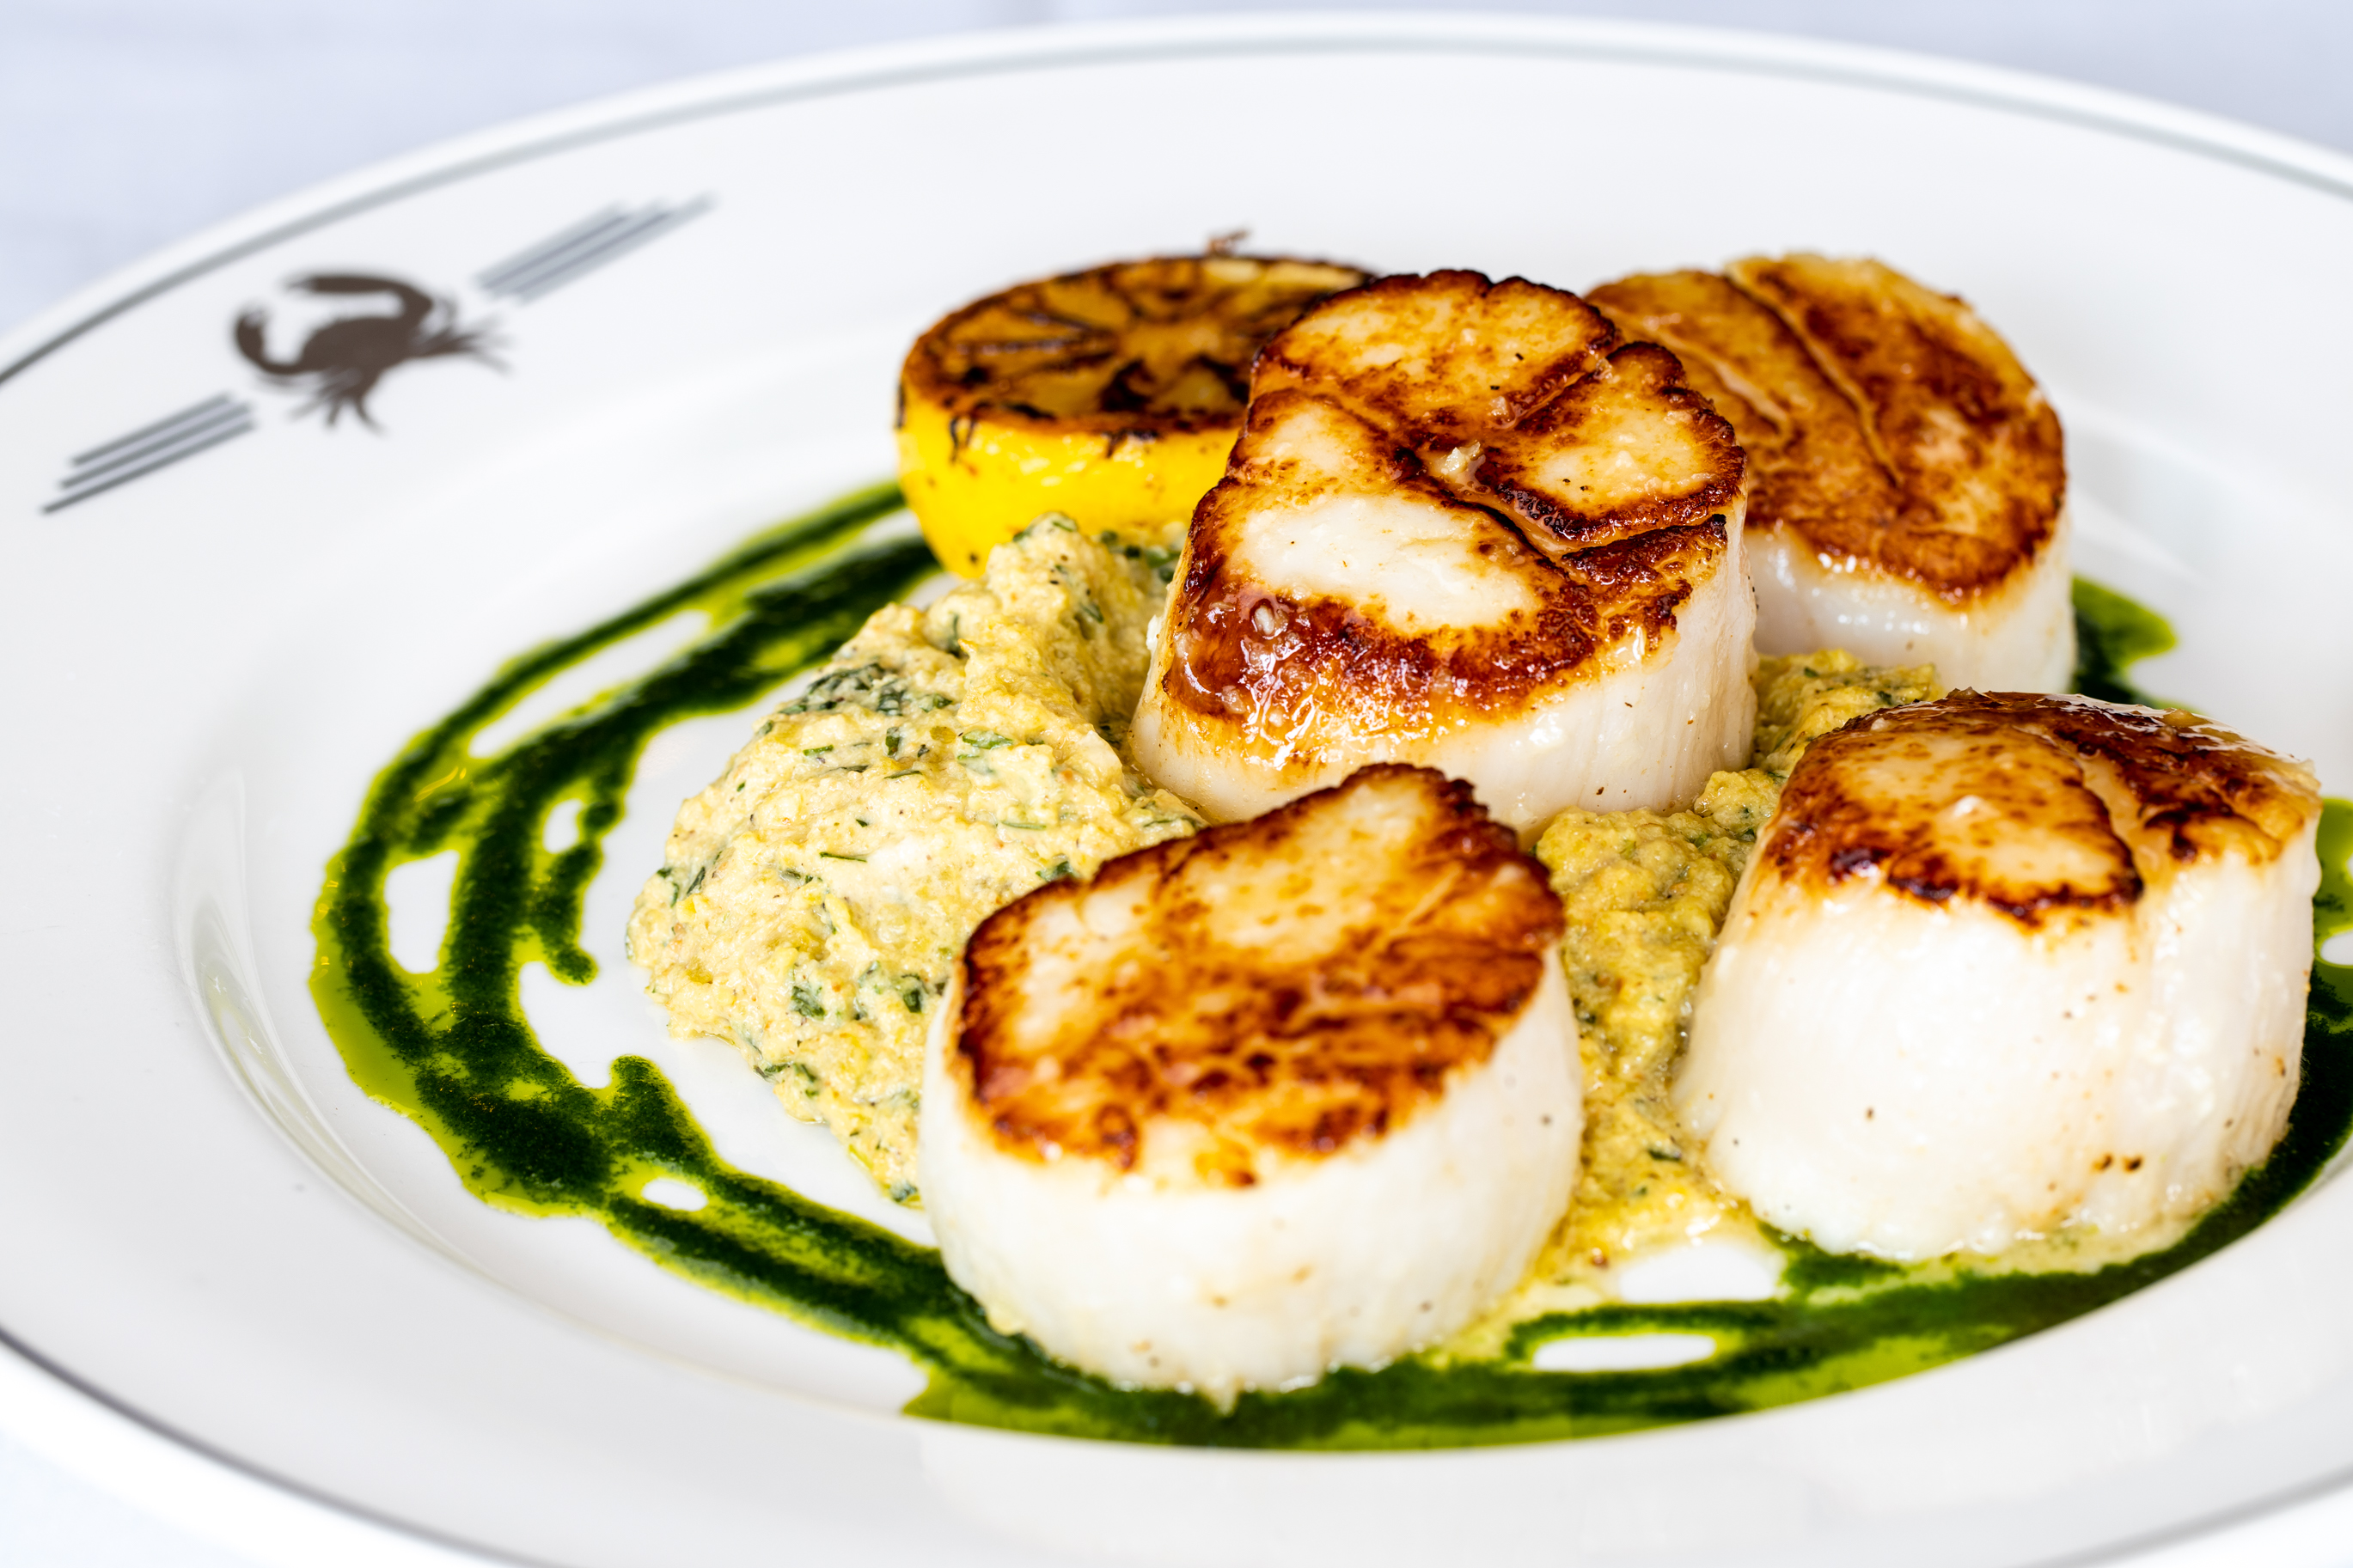 picture of NEW ENGLAND PAN-SEARED SCALLOPS colossal size, with golden beet pesto and herb oil